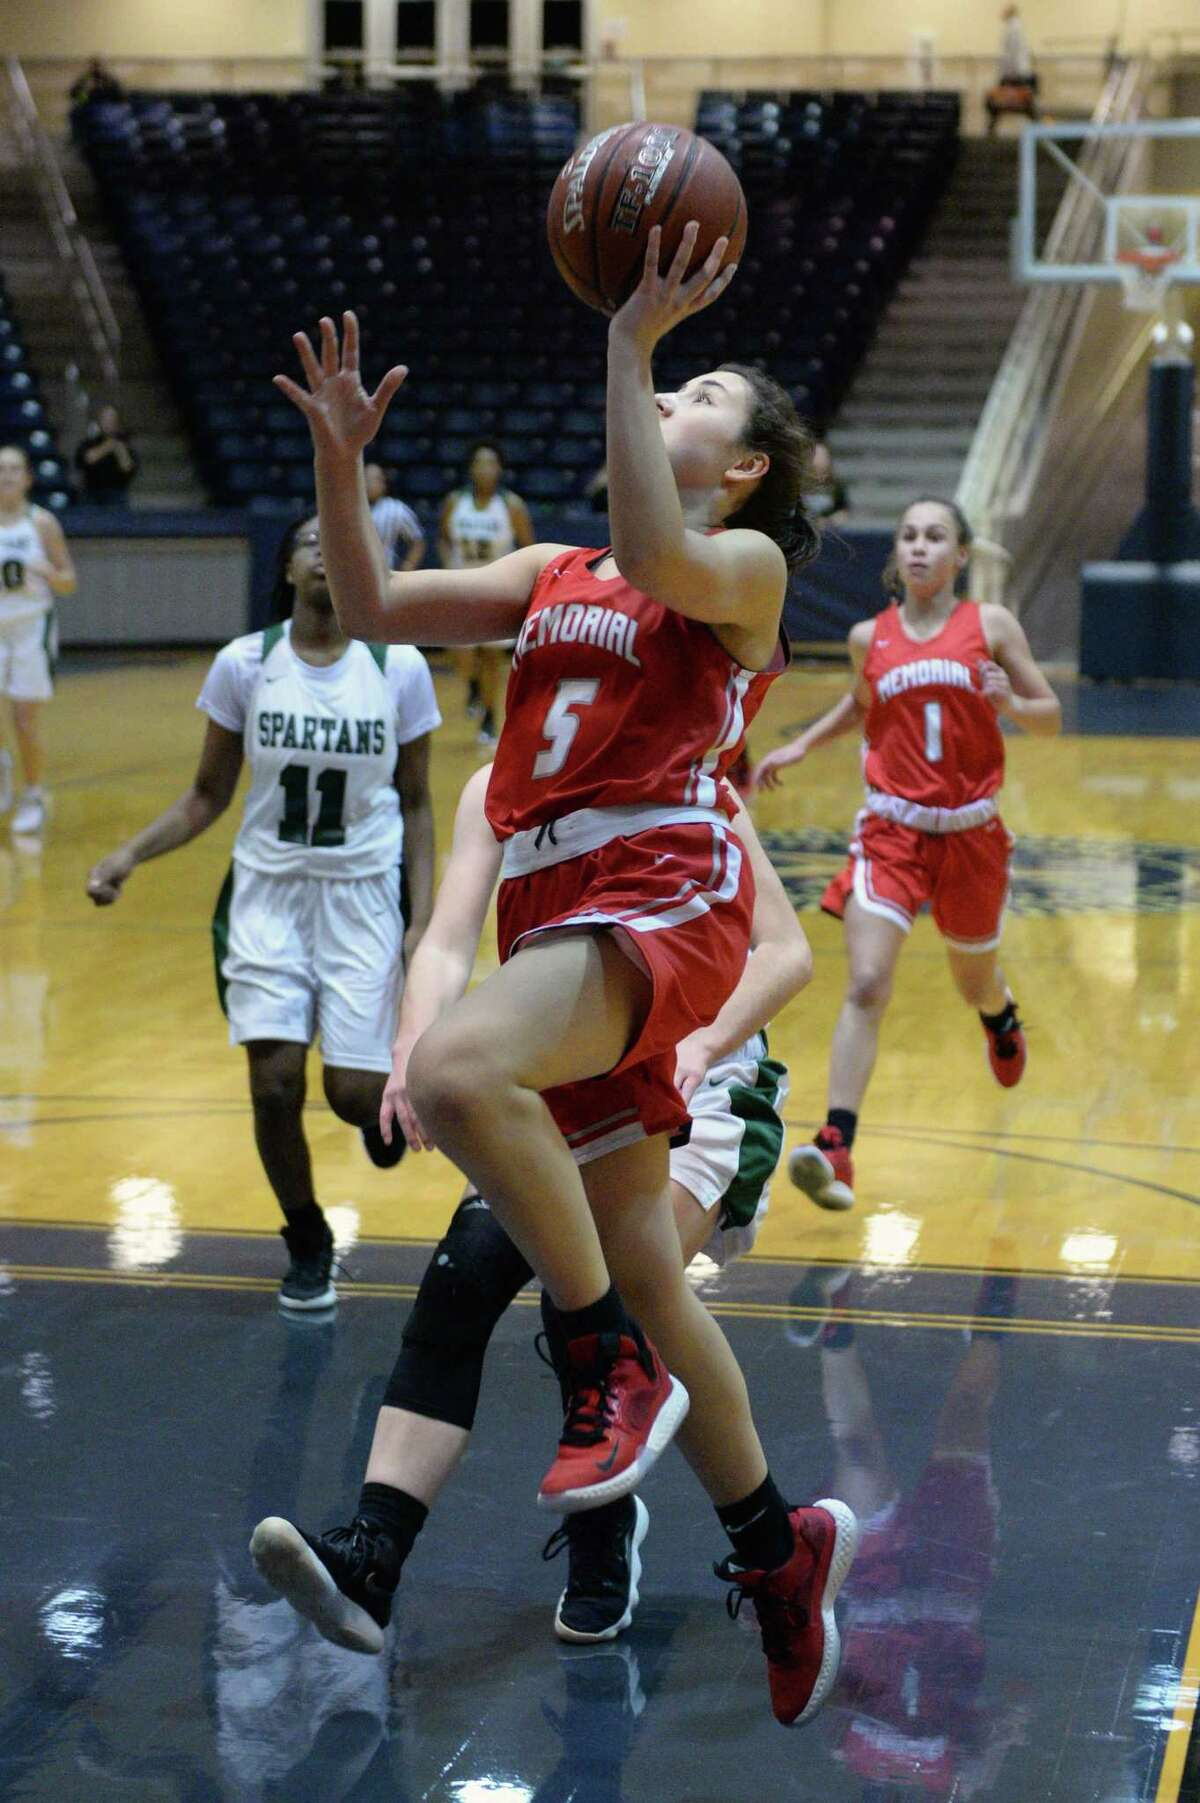 Morgan Matheny (5) of Memorial drives to the basket during the first half of a 6A Region III District 17 Girls basketball game between the Memorial Mustangs and the Stratford Spartans on Tuesday, December 17, 2019 at Coleman Coliseum, Houston, TX.